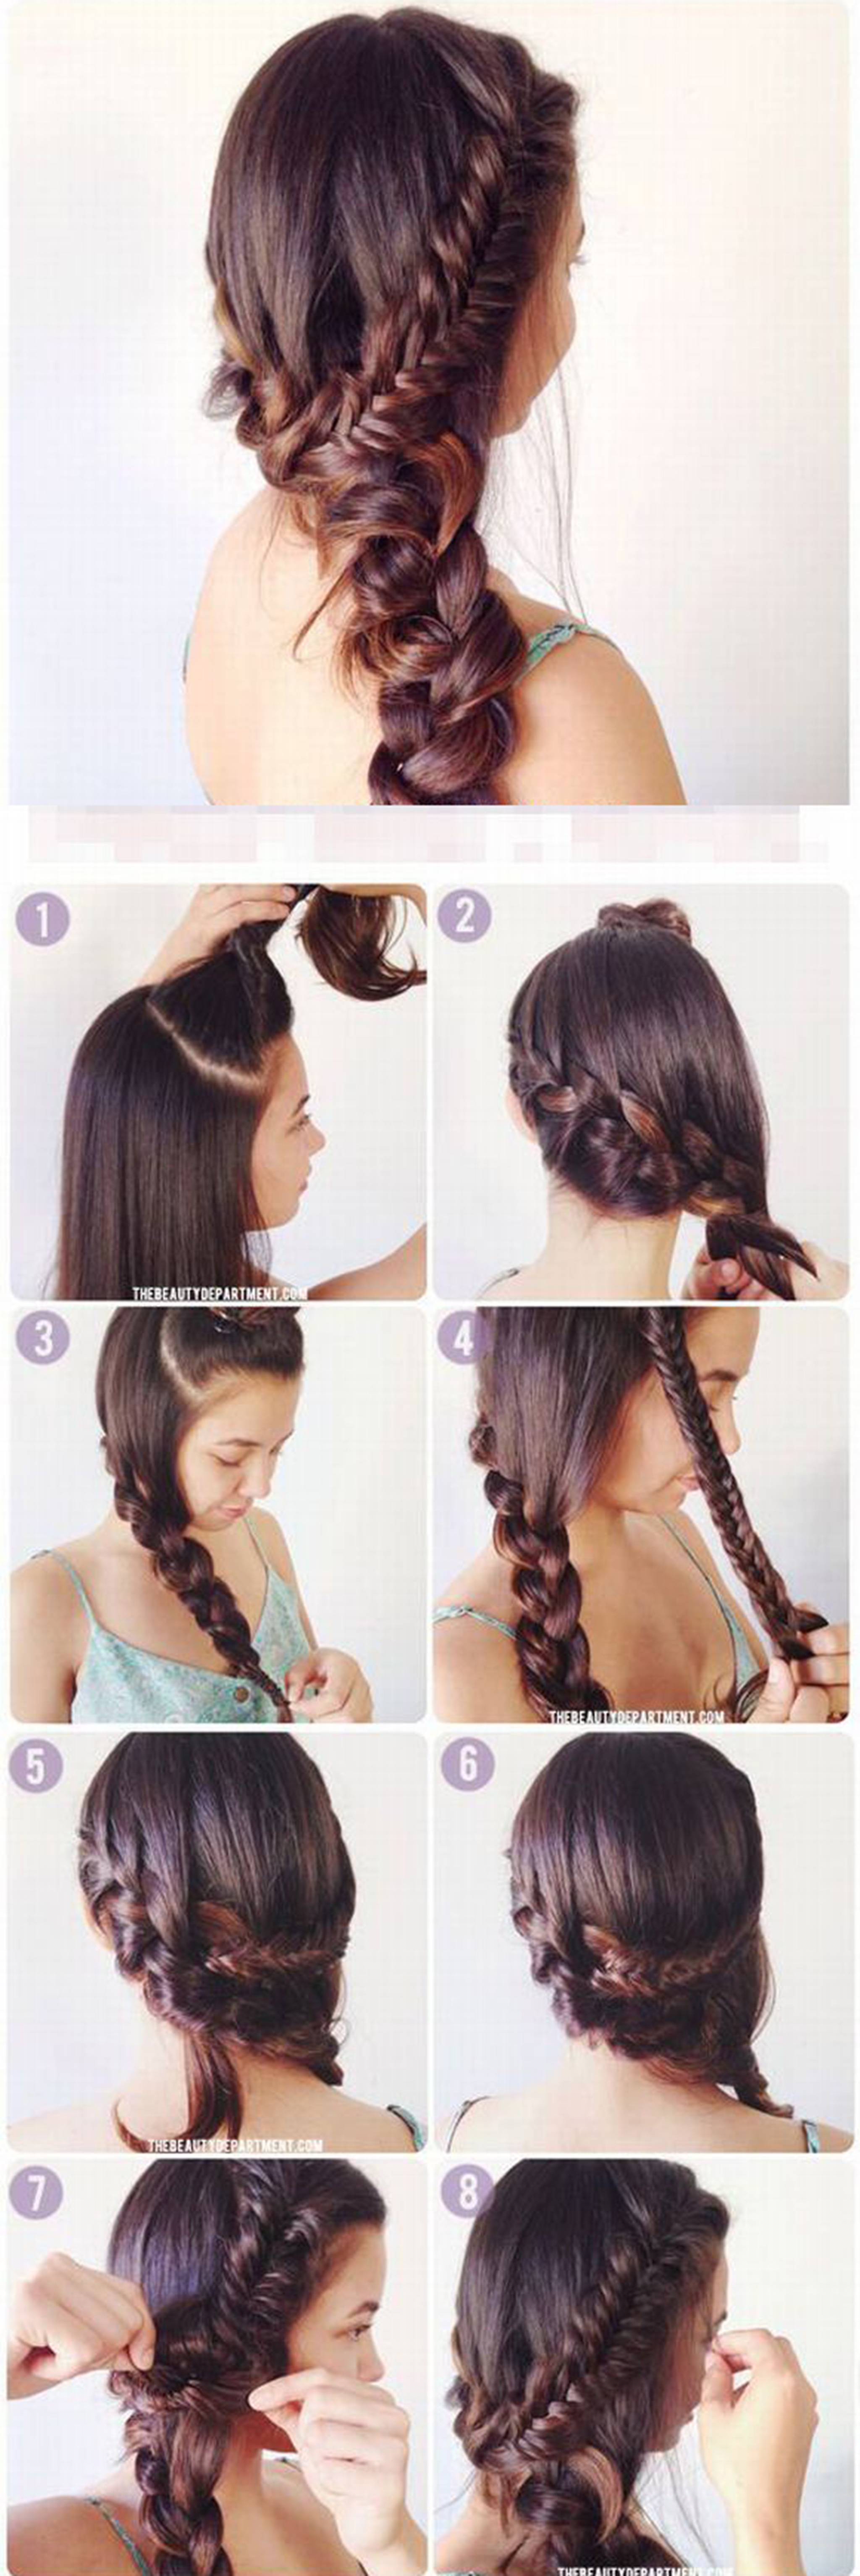 15 Most Beautiful Hairstyles You Will Love - Easy Step By Step Tutorials! | Gymbuddy Now